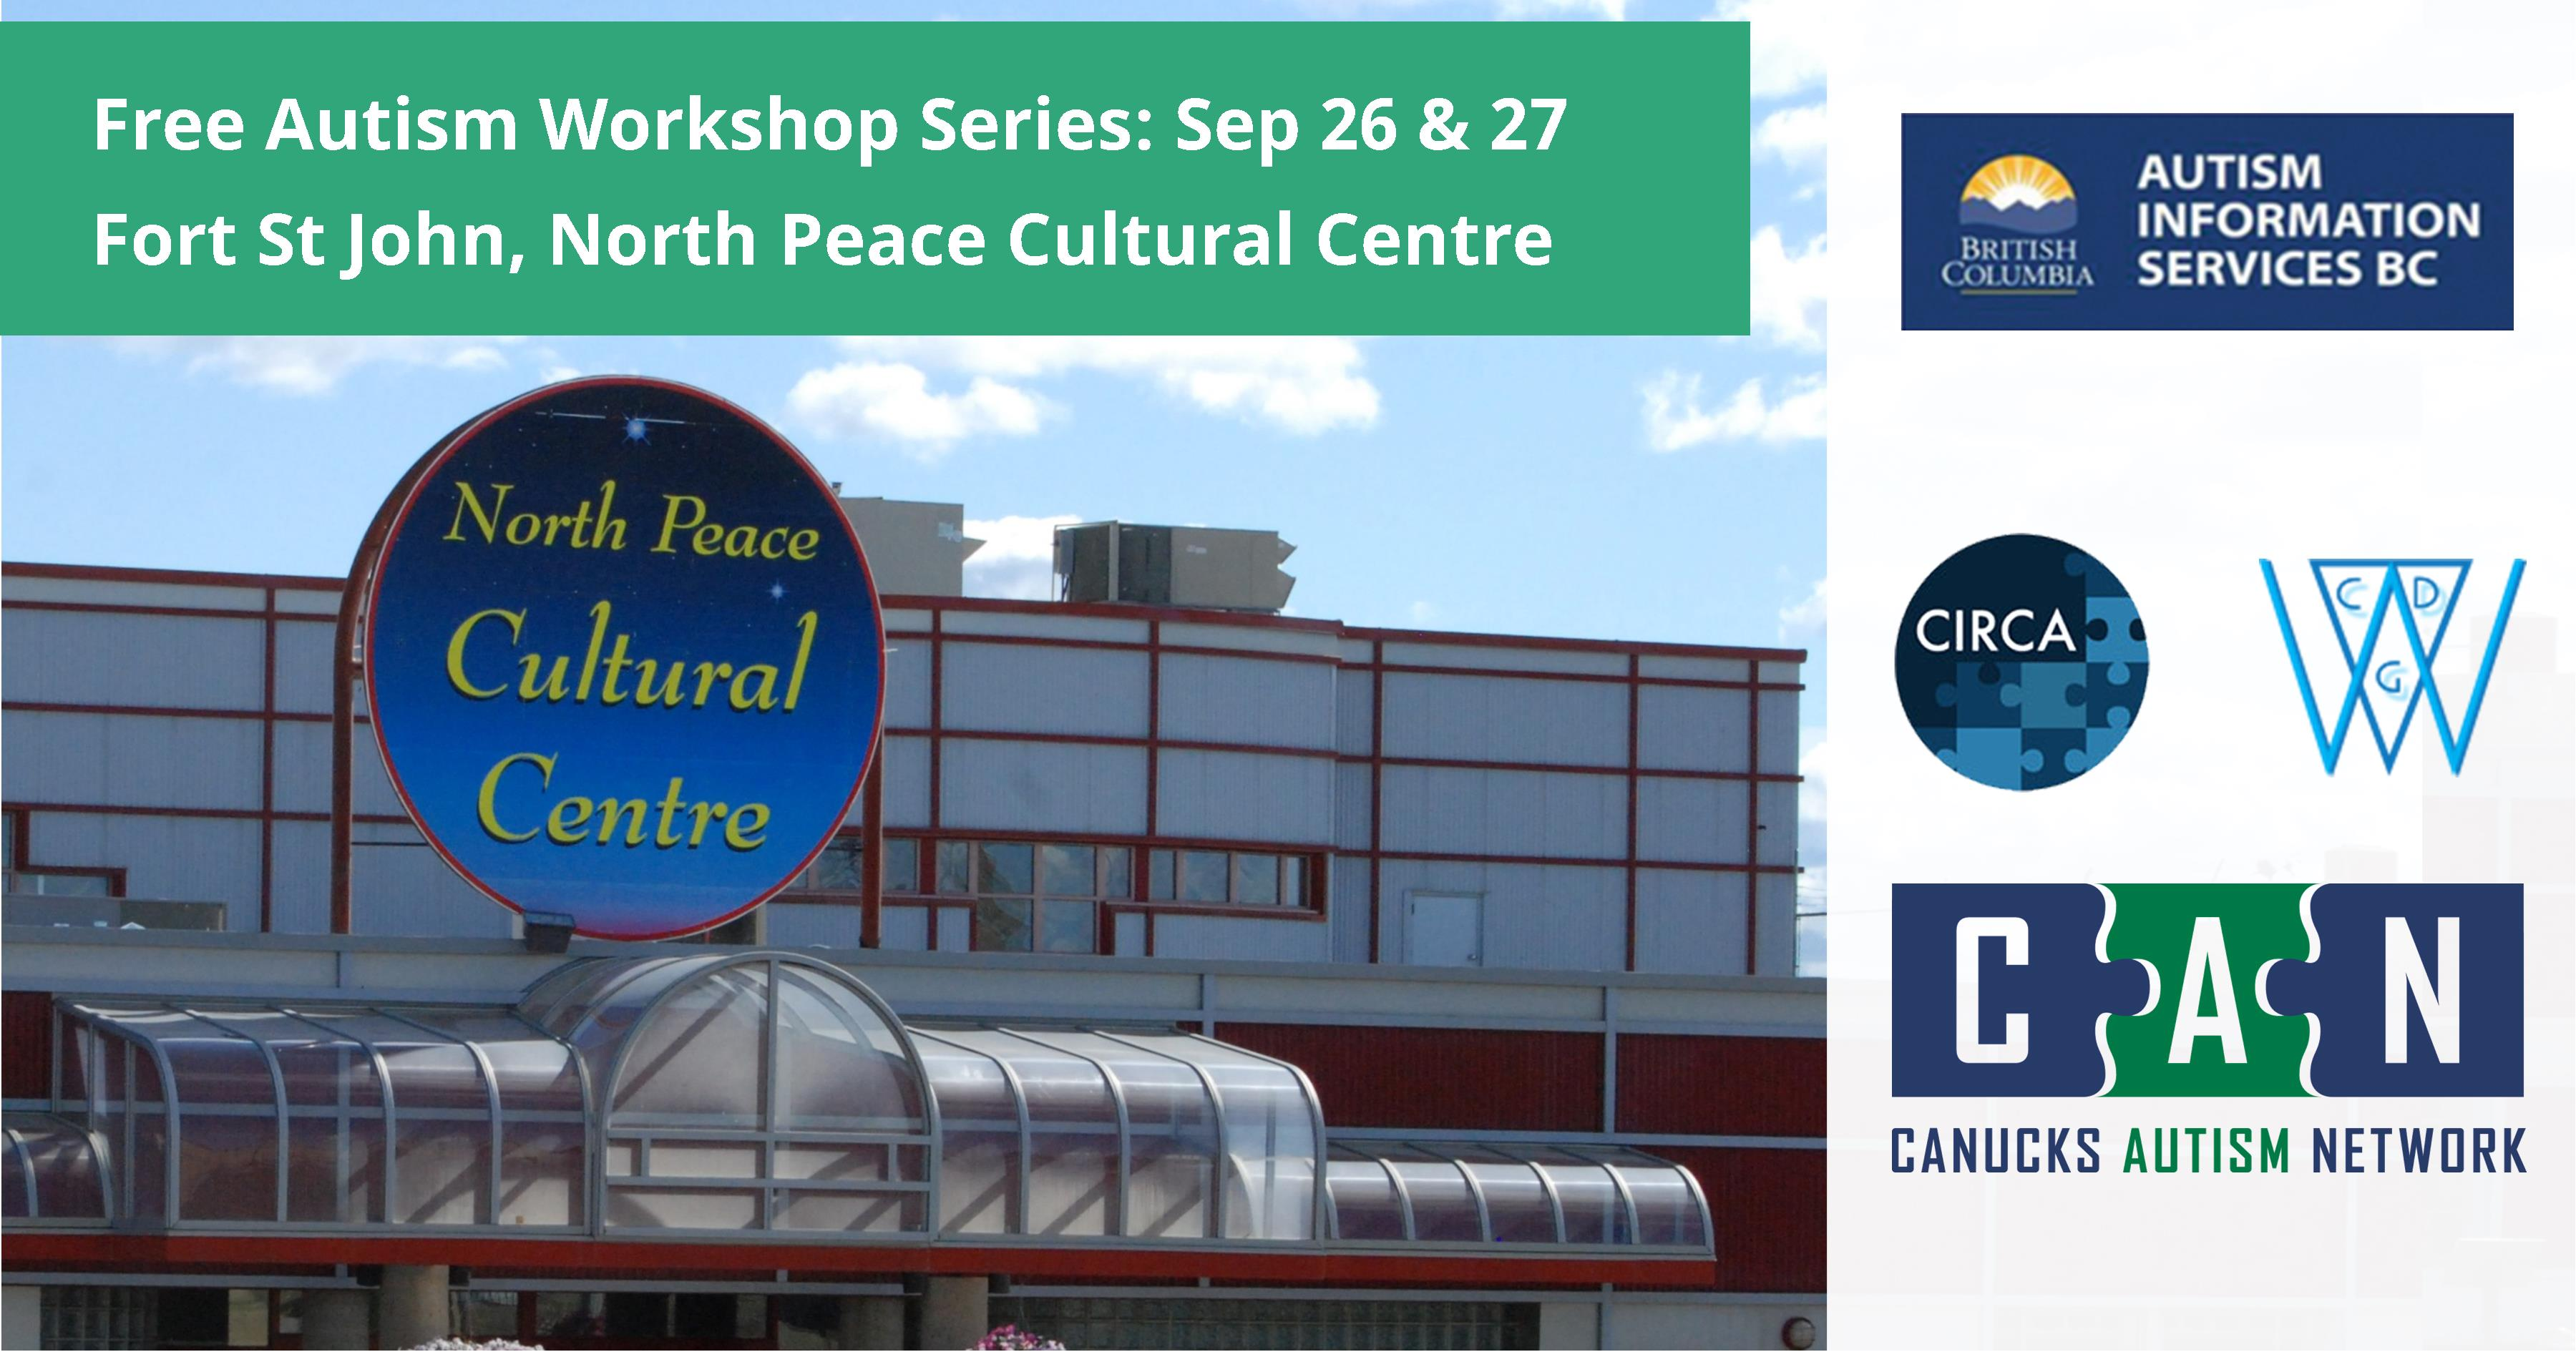 Fort St John autism workshop series on September 26 and 27 at North Peace Cultural Centre